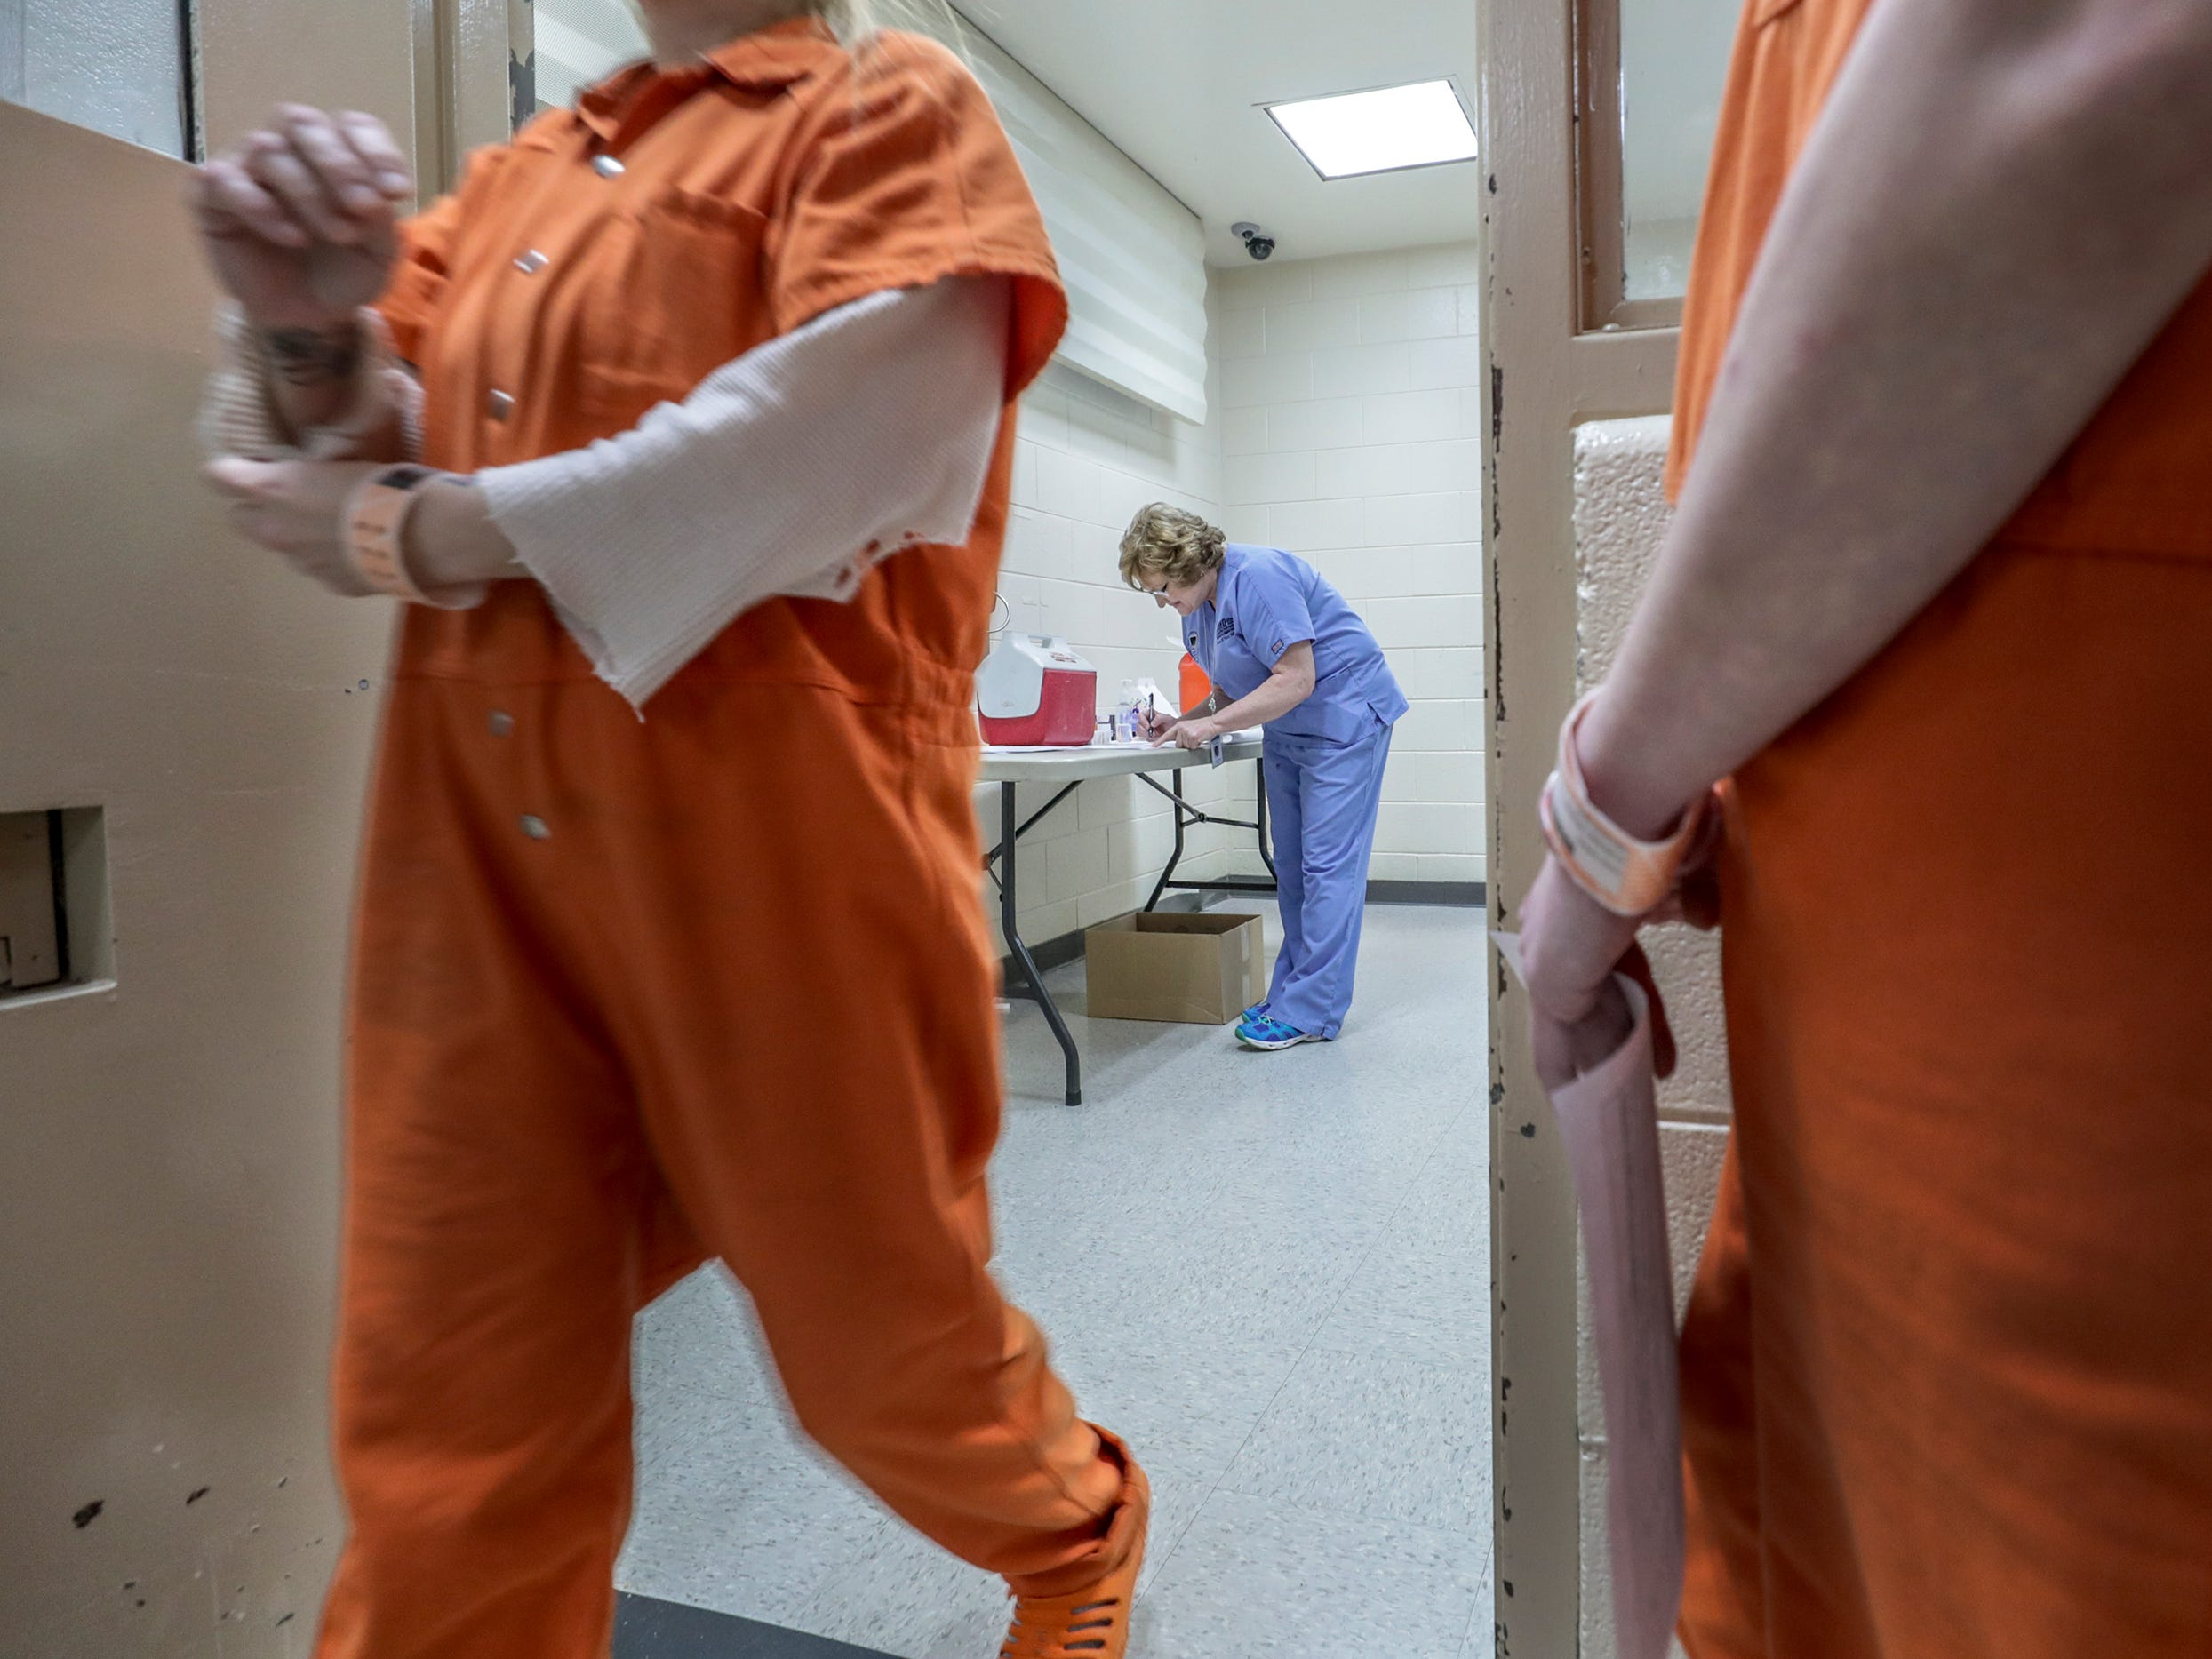 Inmates at the Pulaski County Detention Center wait their turn to get a vaccination from Sharon Wesley from the Lake Cumberland District Health Department.  Wesley vaccinated 16 male and female inmates one afternoon.  About 90 percent of inmates opt to get vaccinated.